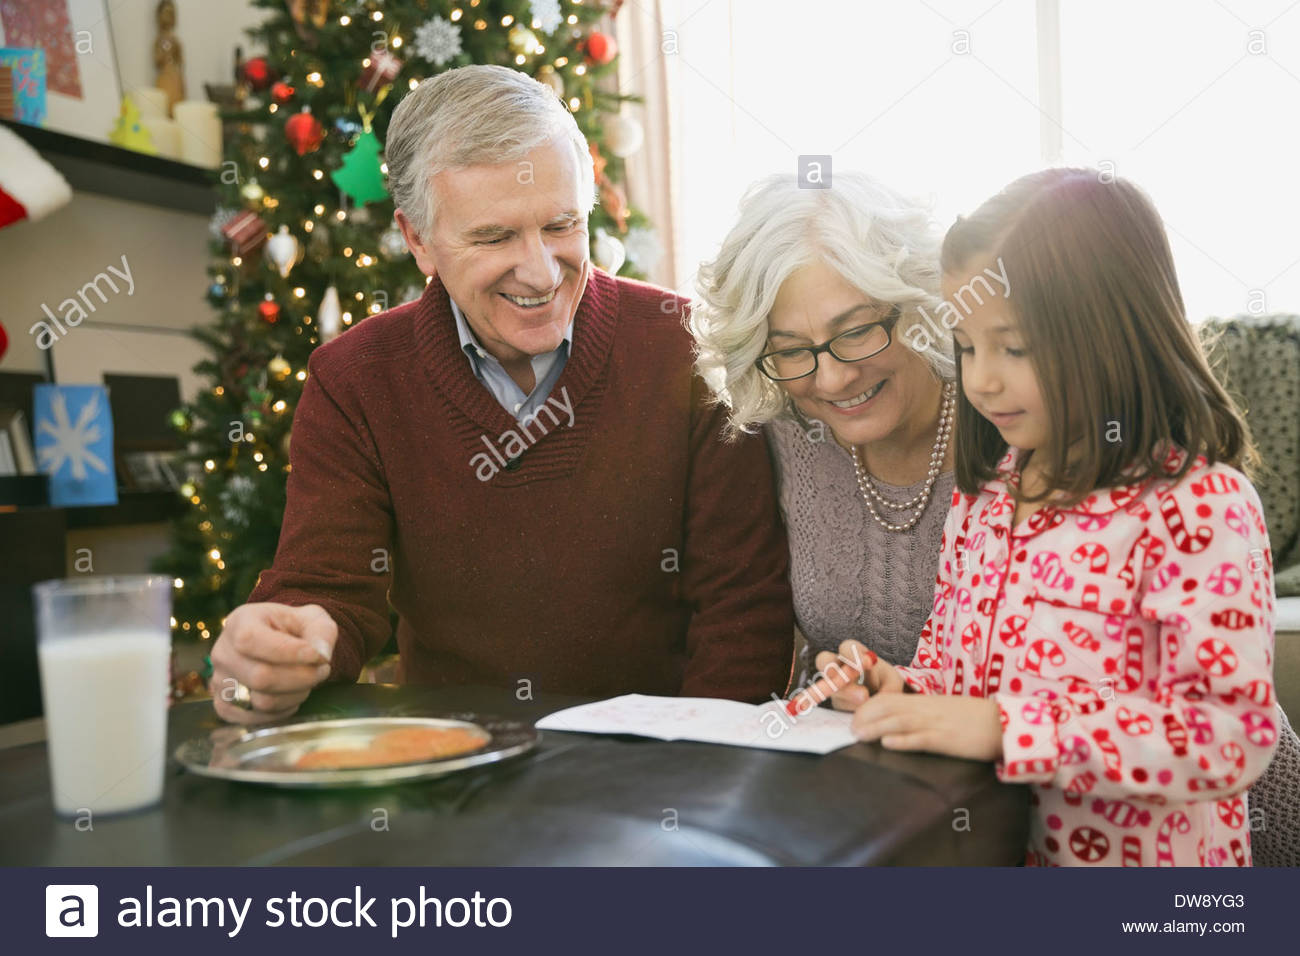 Grandparents helping girl write letter to Santa Claus - Stock Image